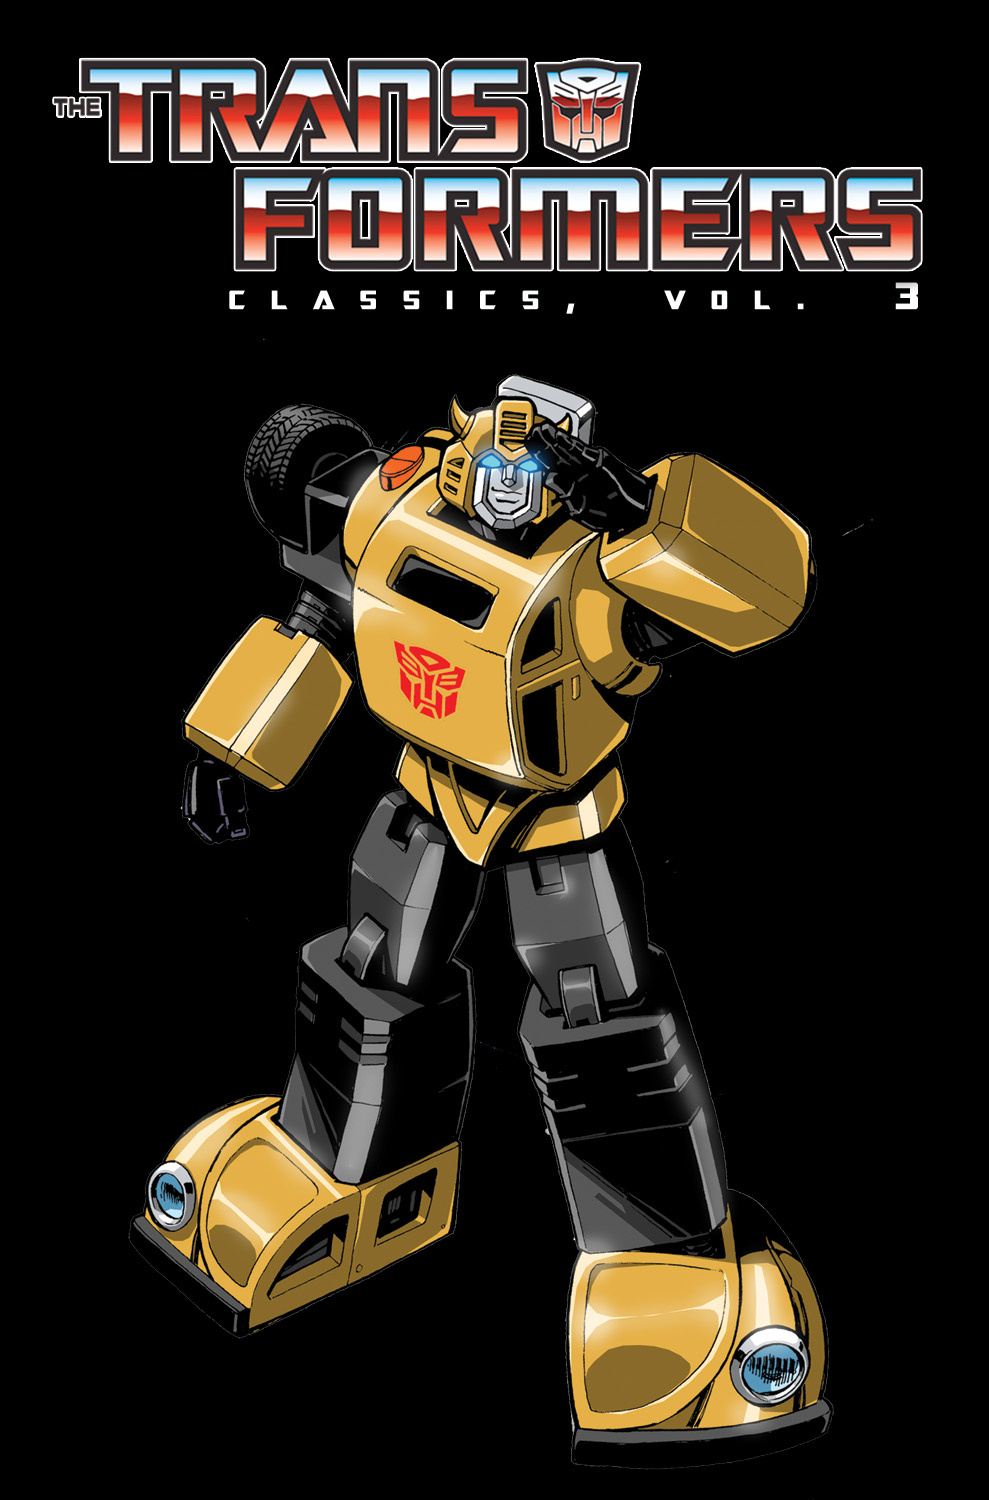 The Transformers Classics Volume 3 Image